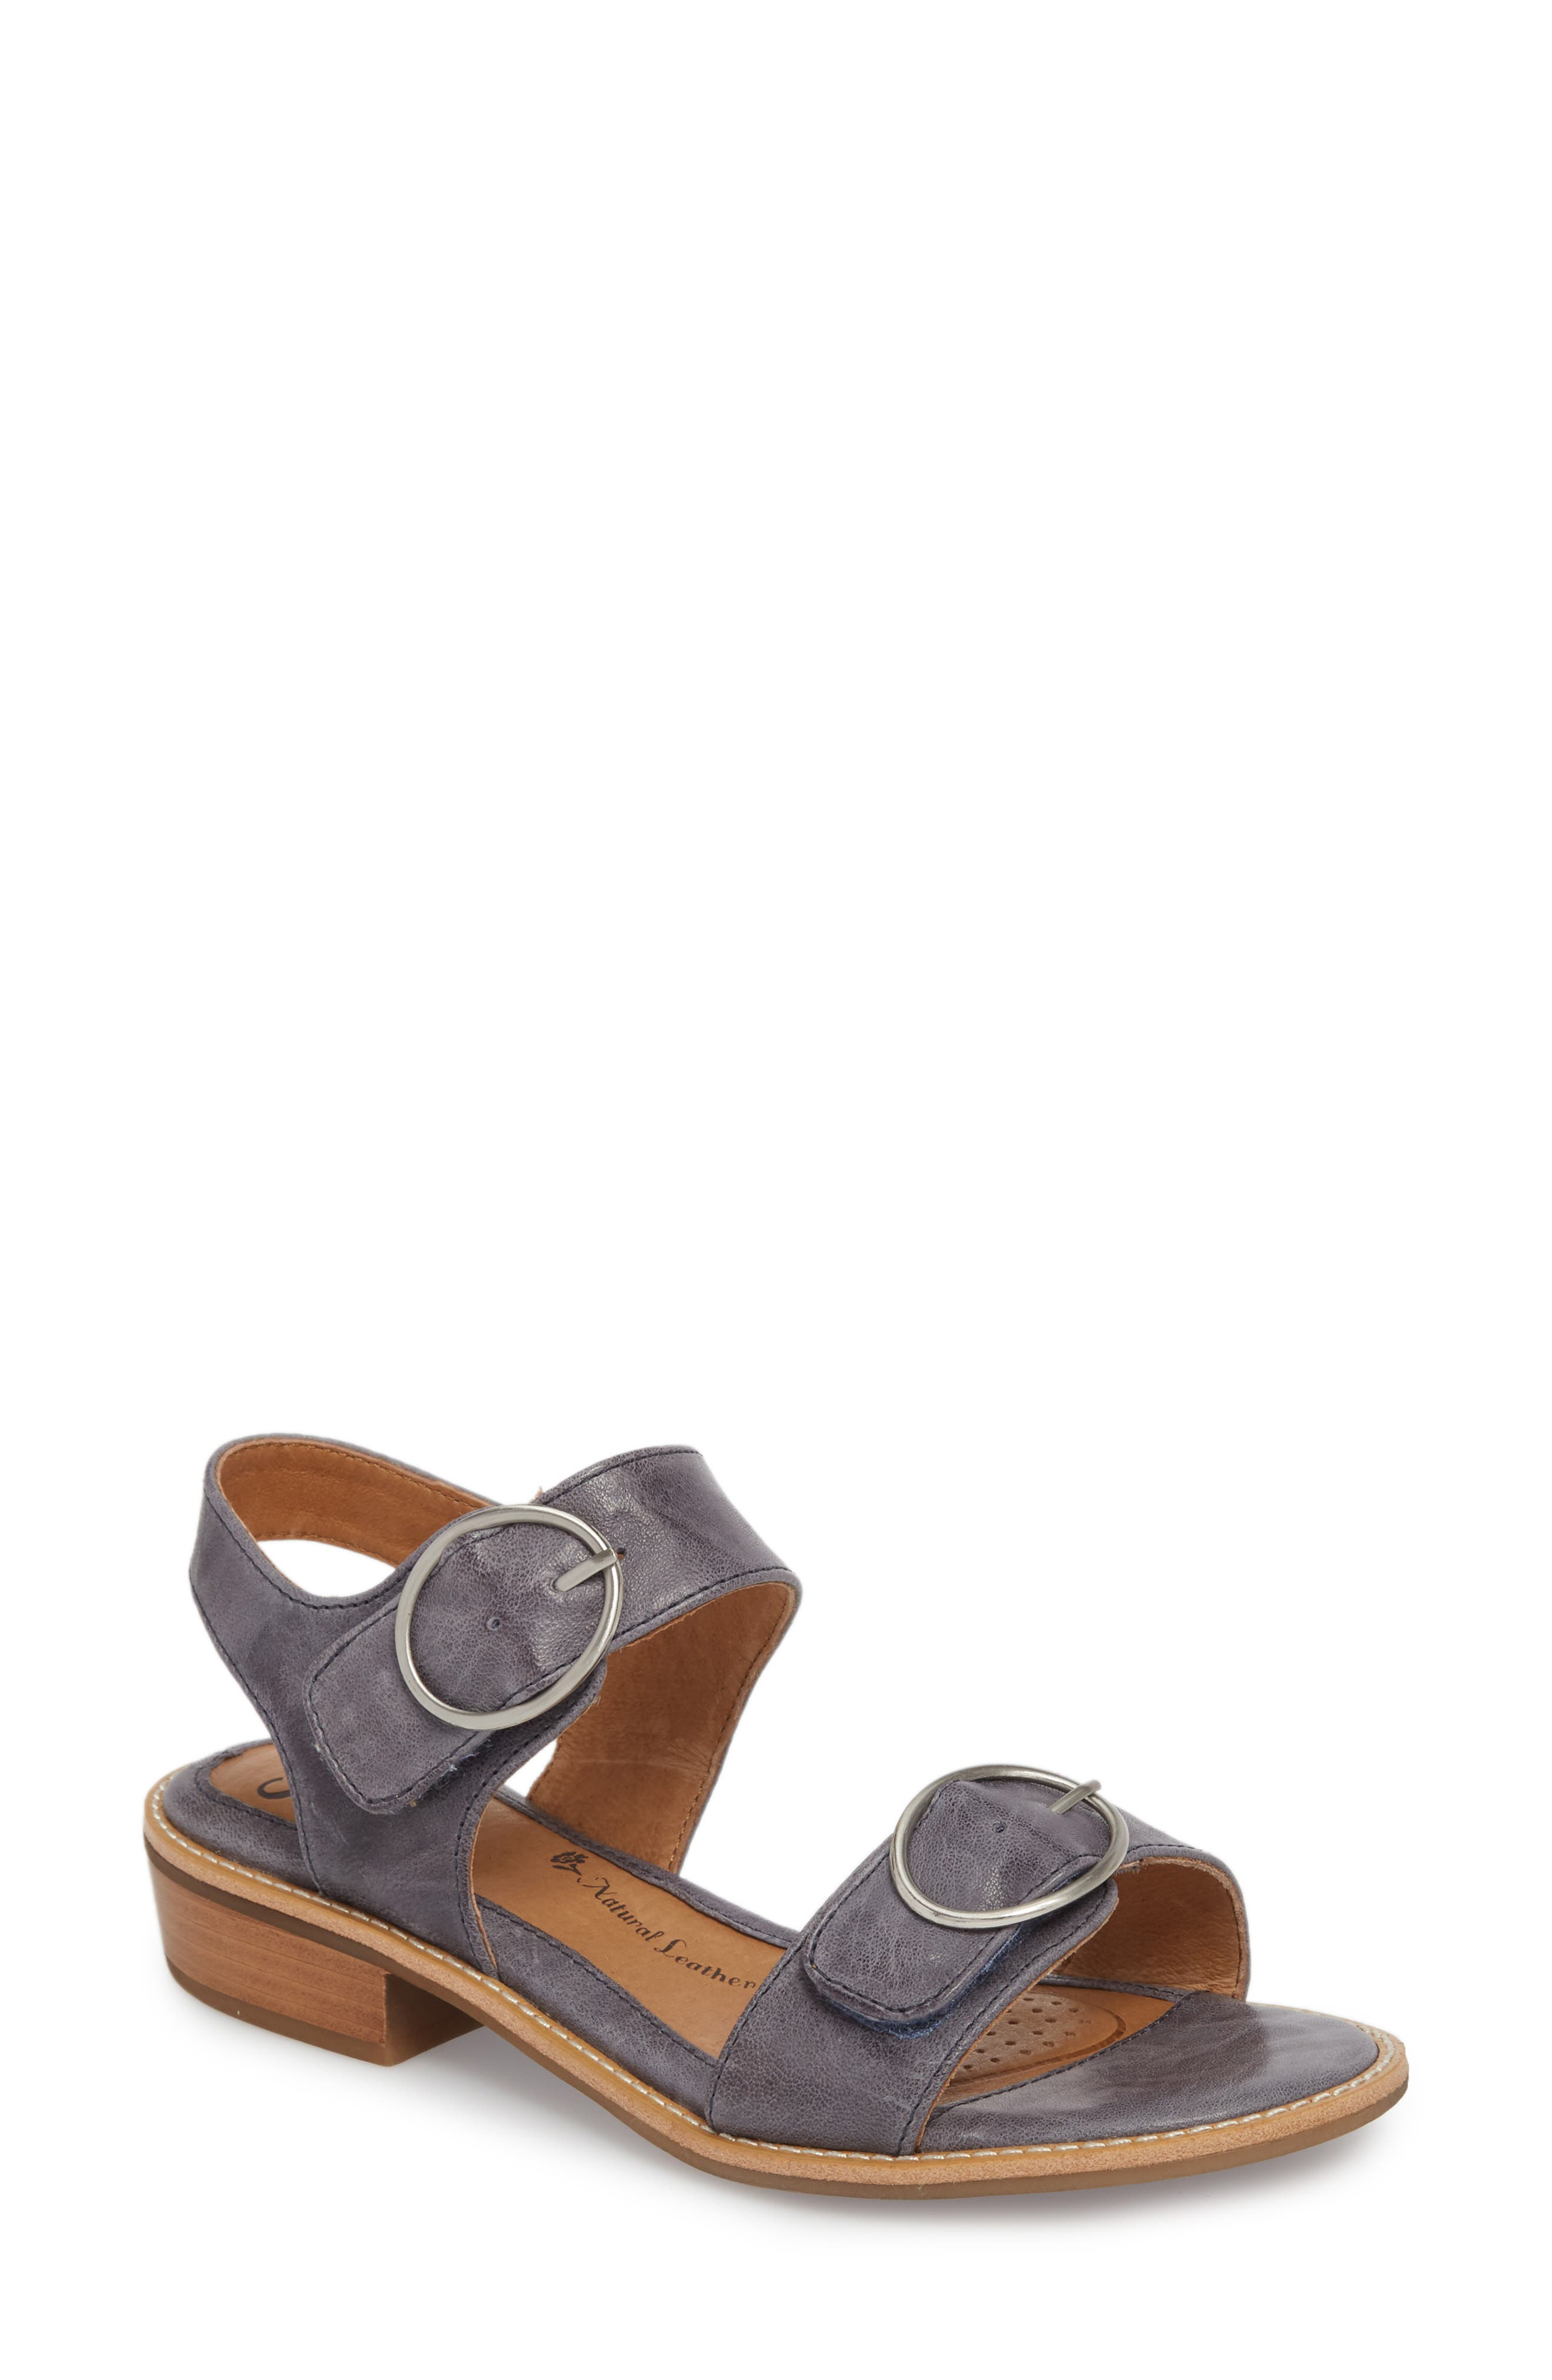 Nerissa Sandal,                         Main,                         color, Chambray Leather